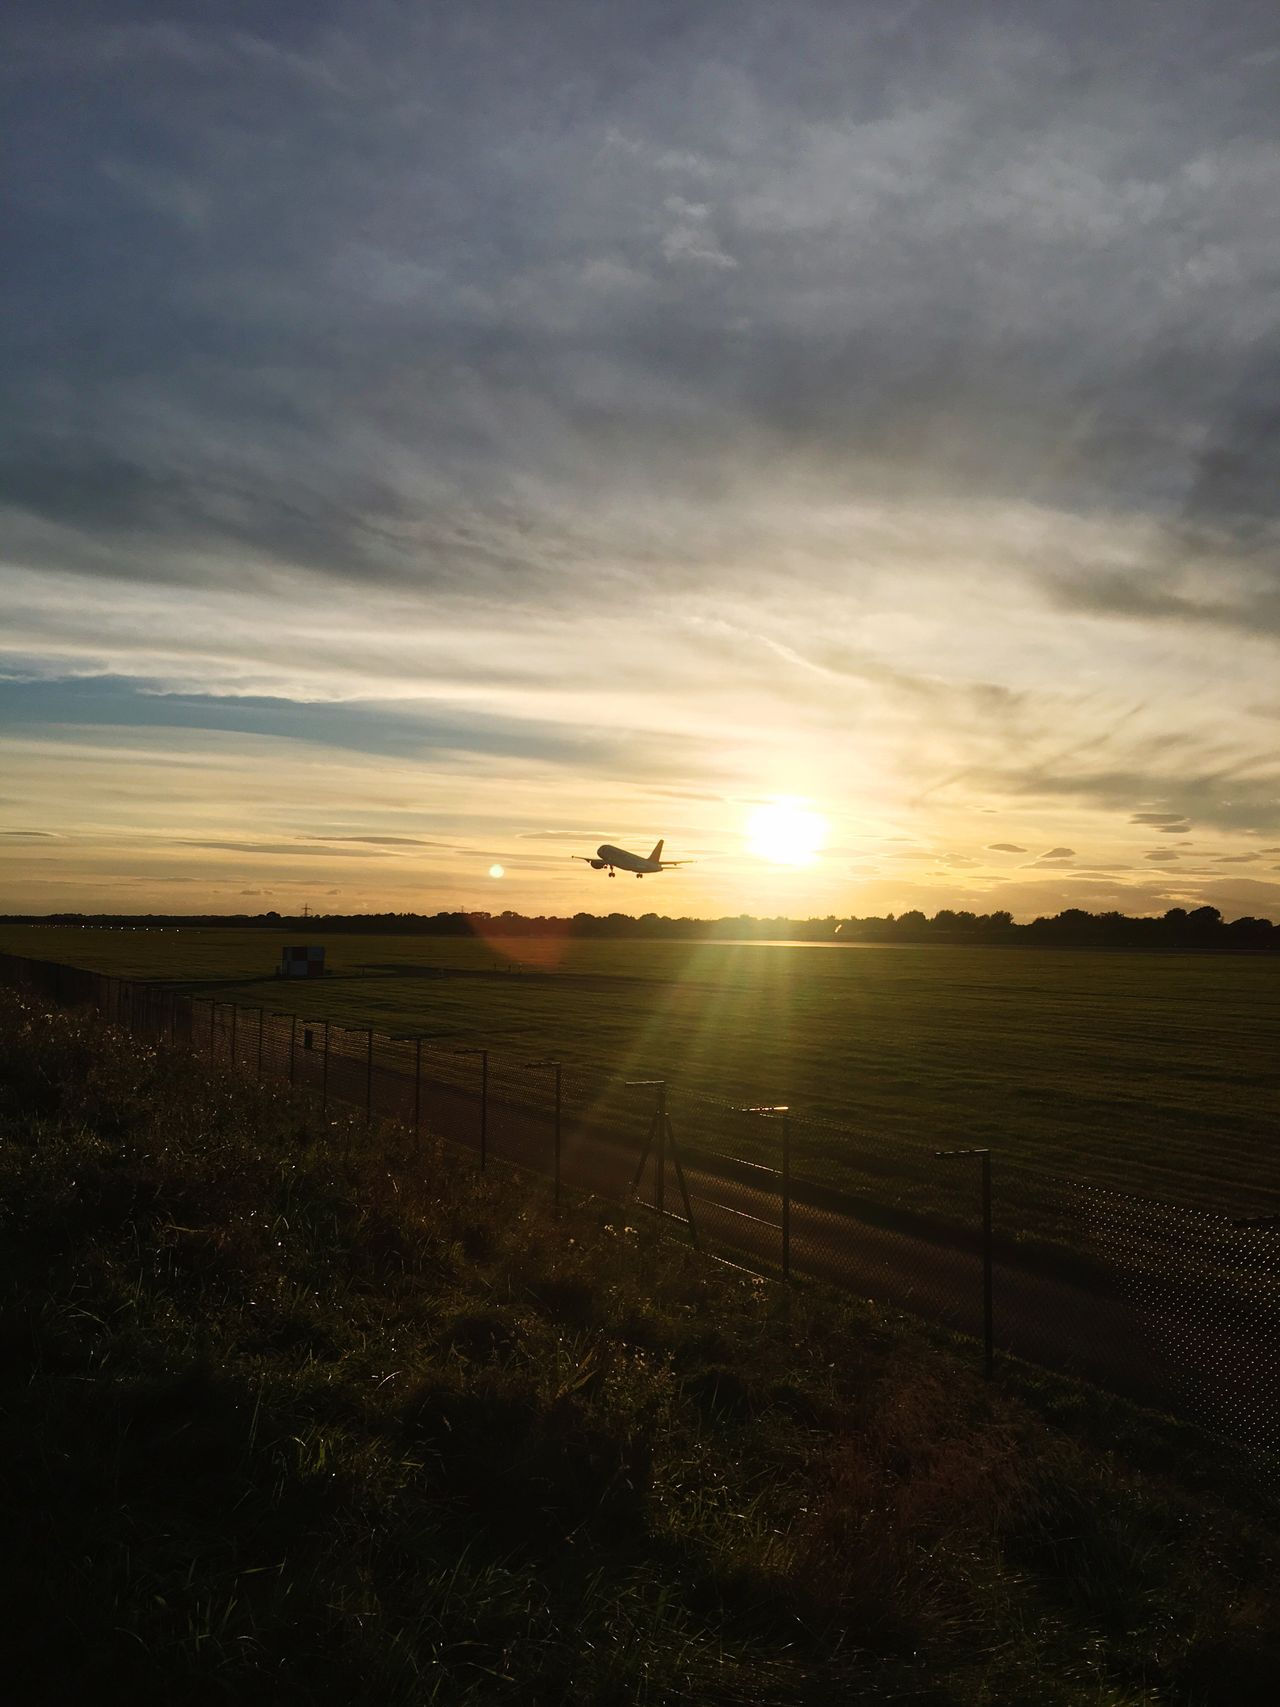 Landscape Sunset Field Tranquil Scene Tranquility Sun Sunlight Scenics Grass Rural Scene Beauty In Nature Horizon Over Land Sky Agriculture Nature Lens Flare Sunbeam Outdoors Crop  Farm Airplane